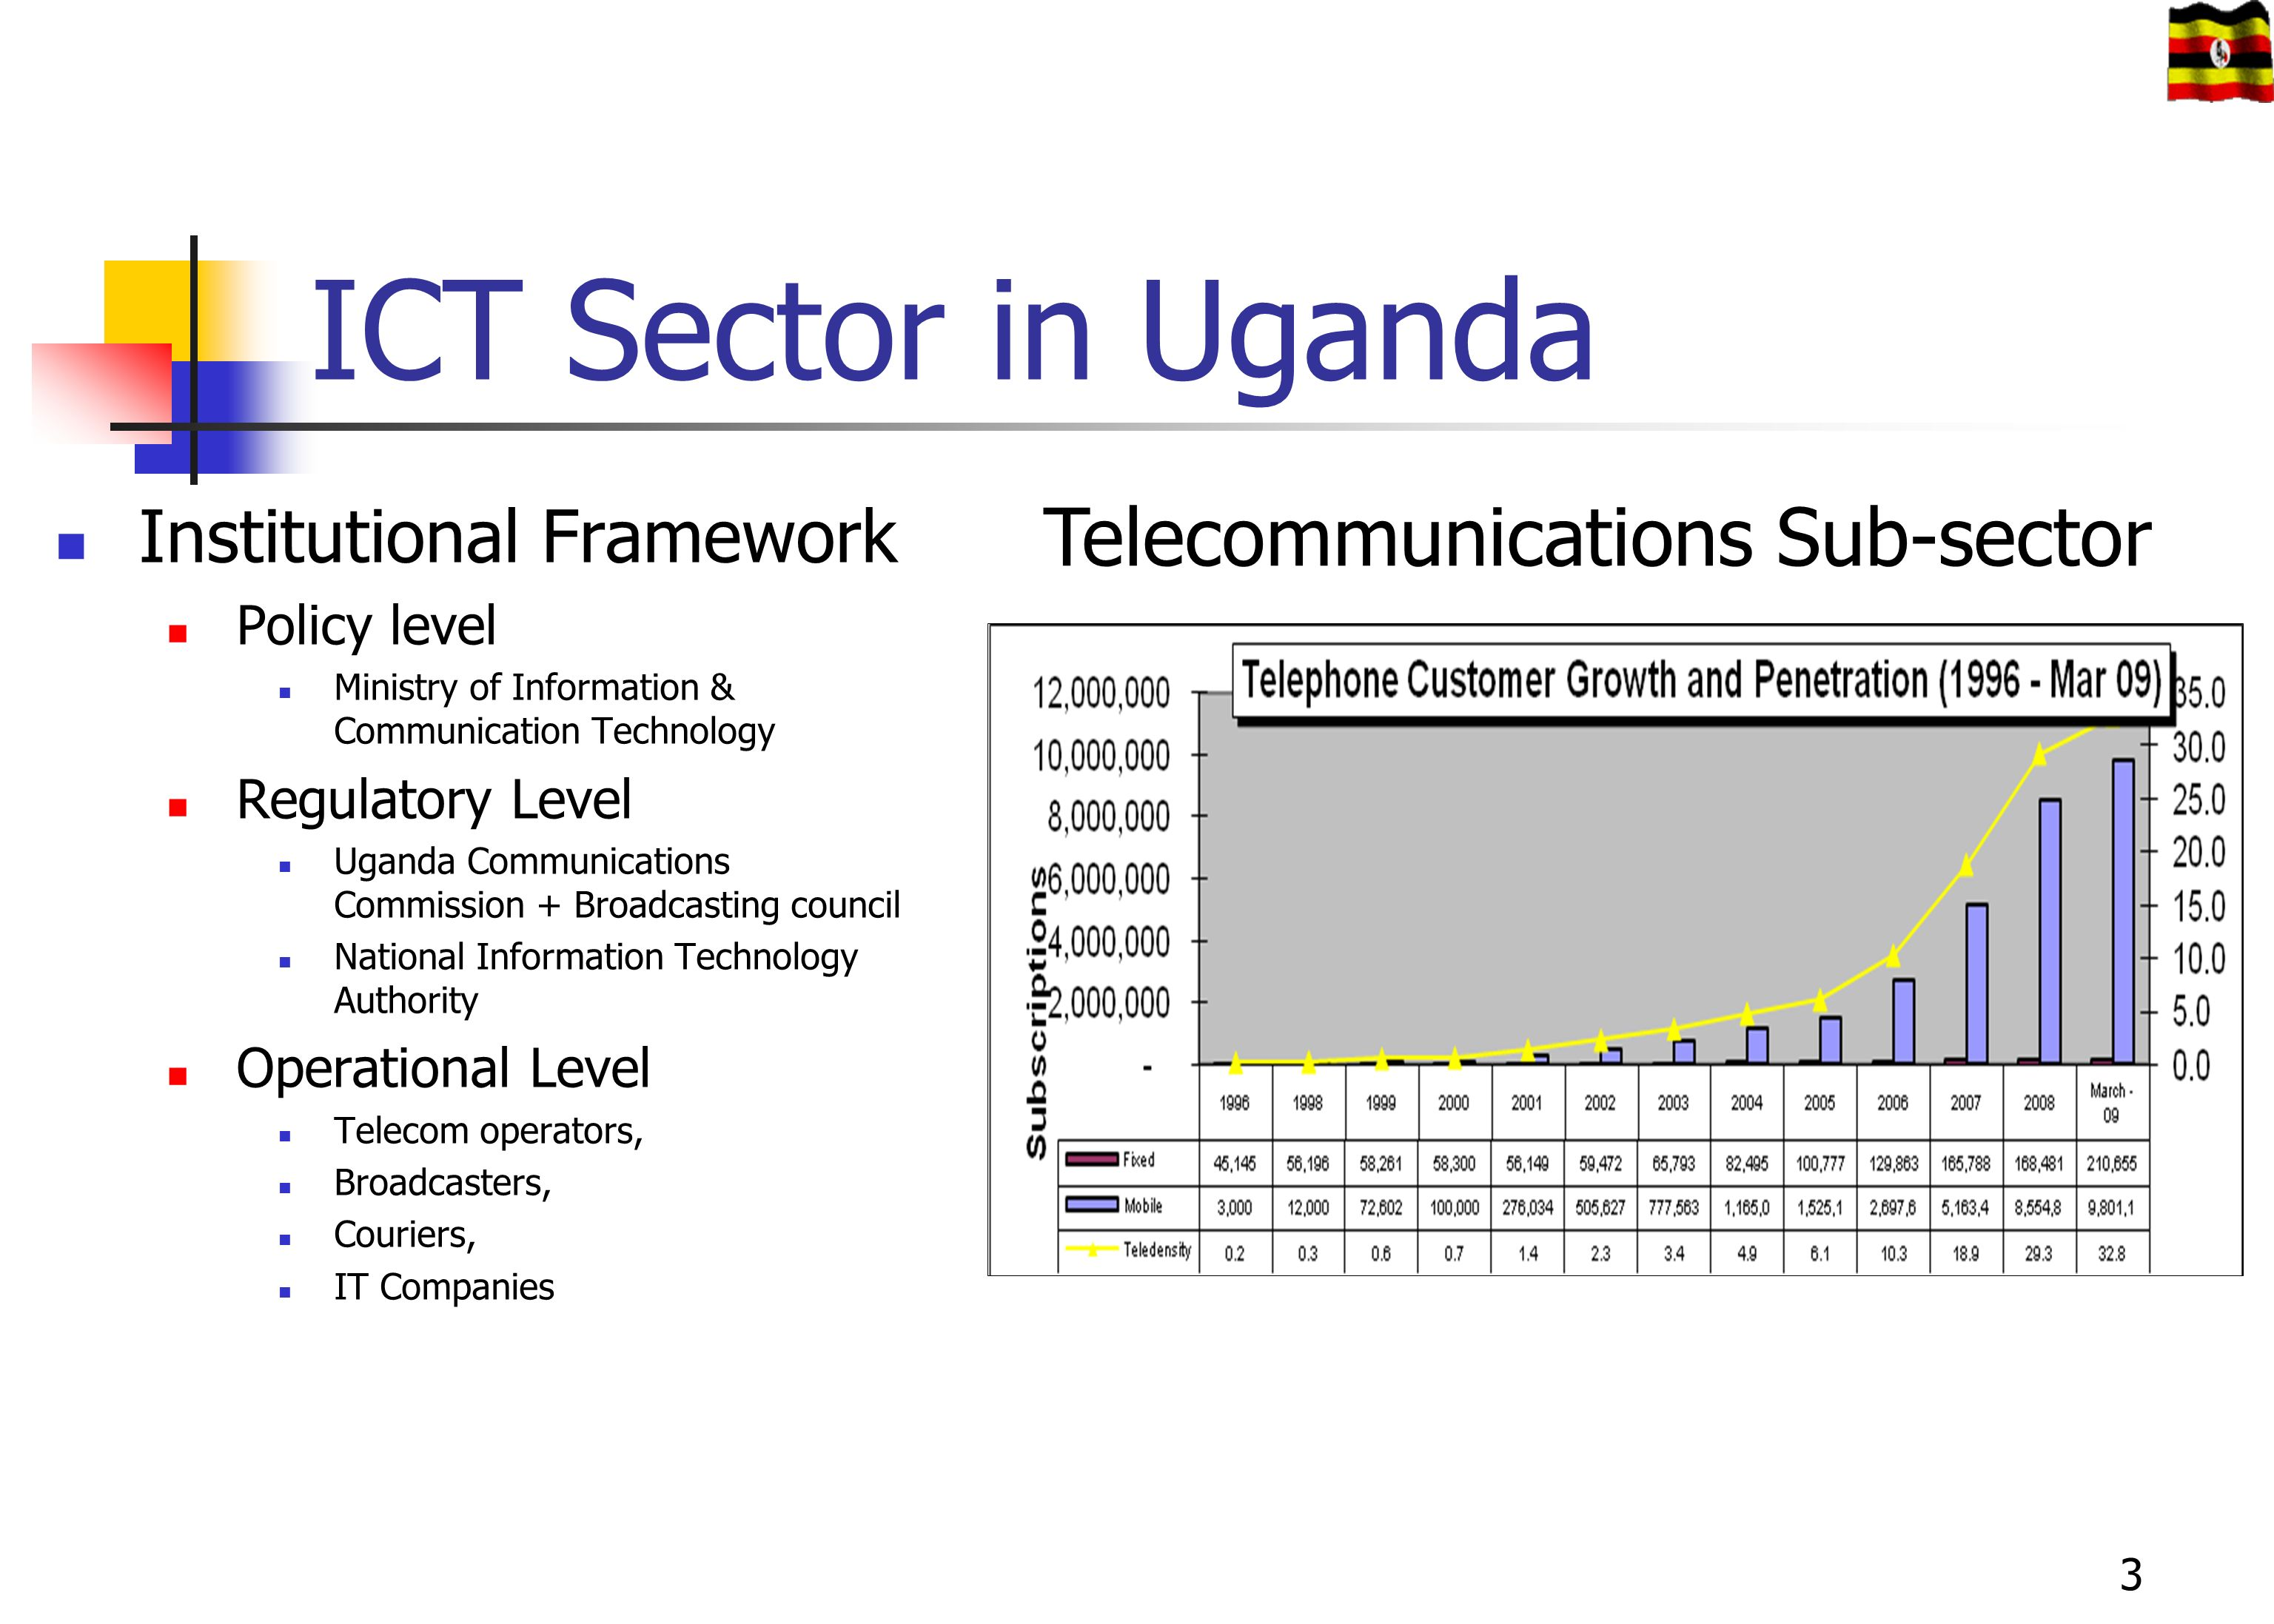 ICT Sector in Uganda Telecommunications Sub-sector